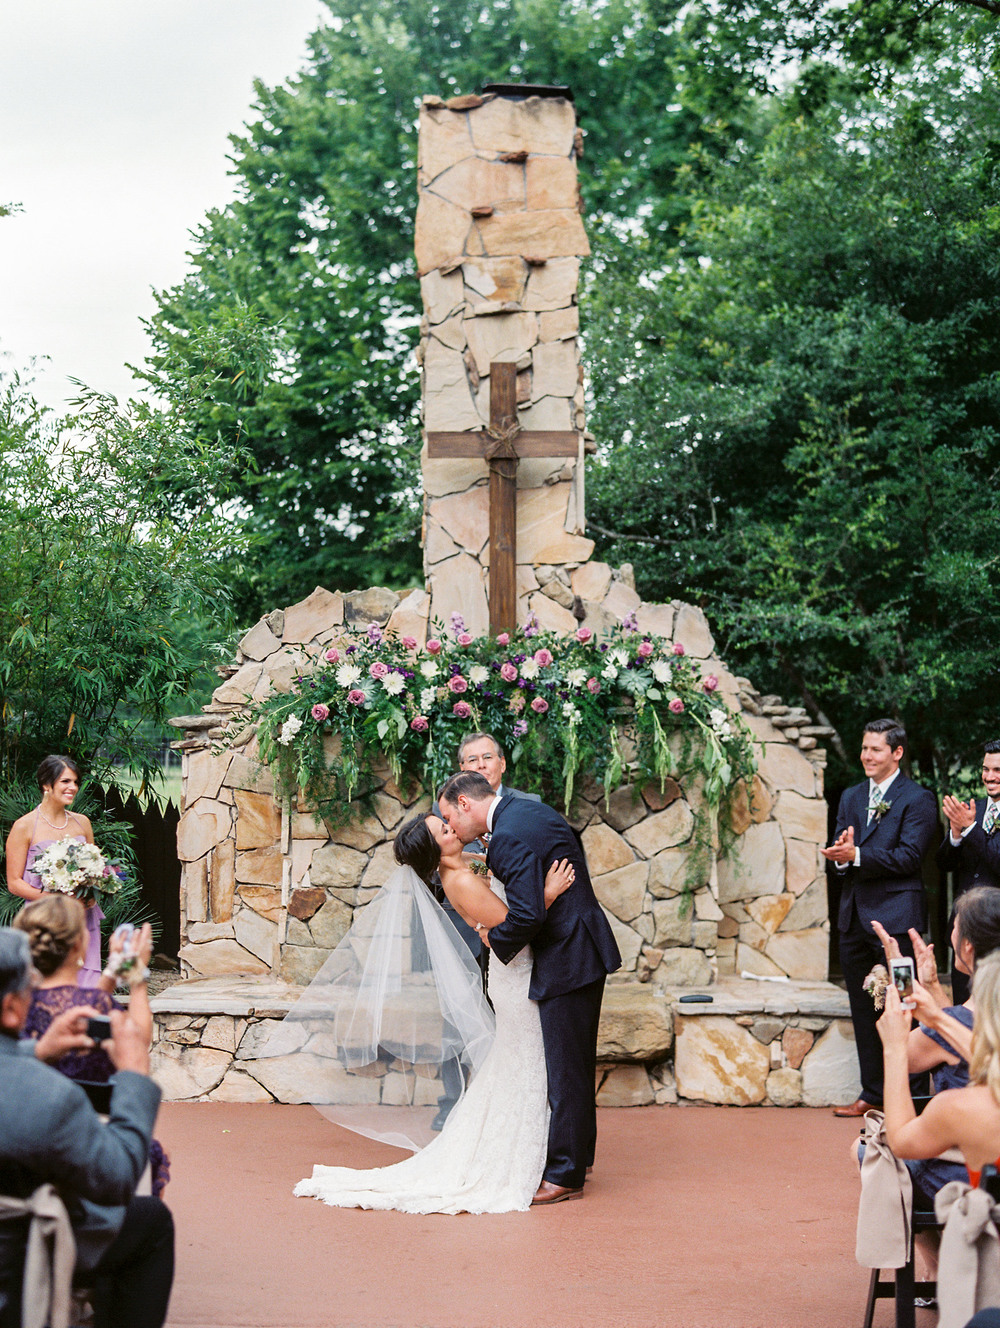 Dana Fernandez Photography Agave Road Agave Estates Houston Texas Wedding Photographer Destination Southwest Film-11.jpg